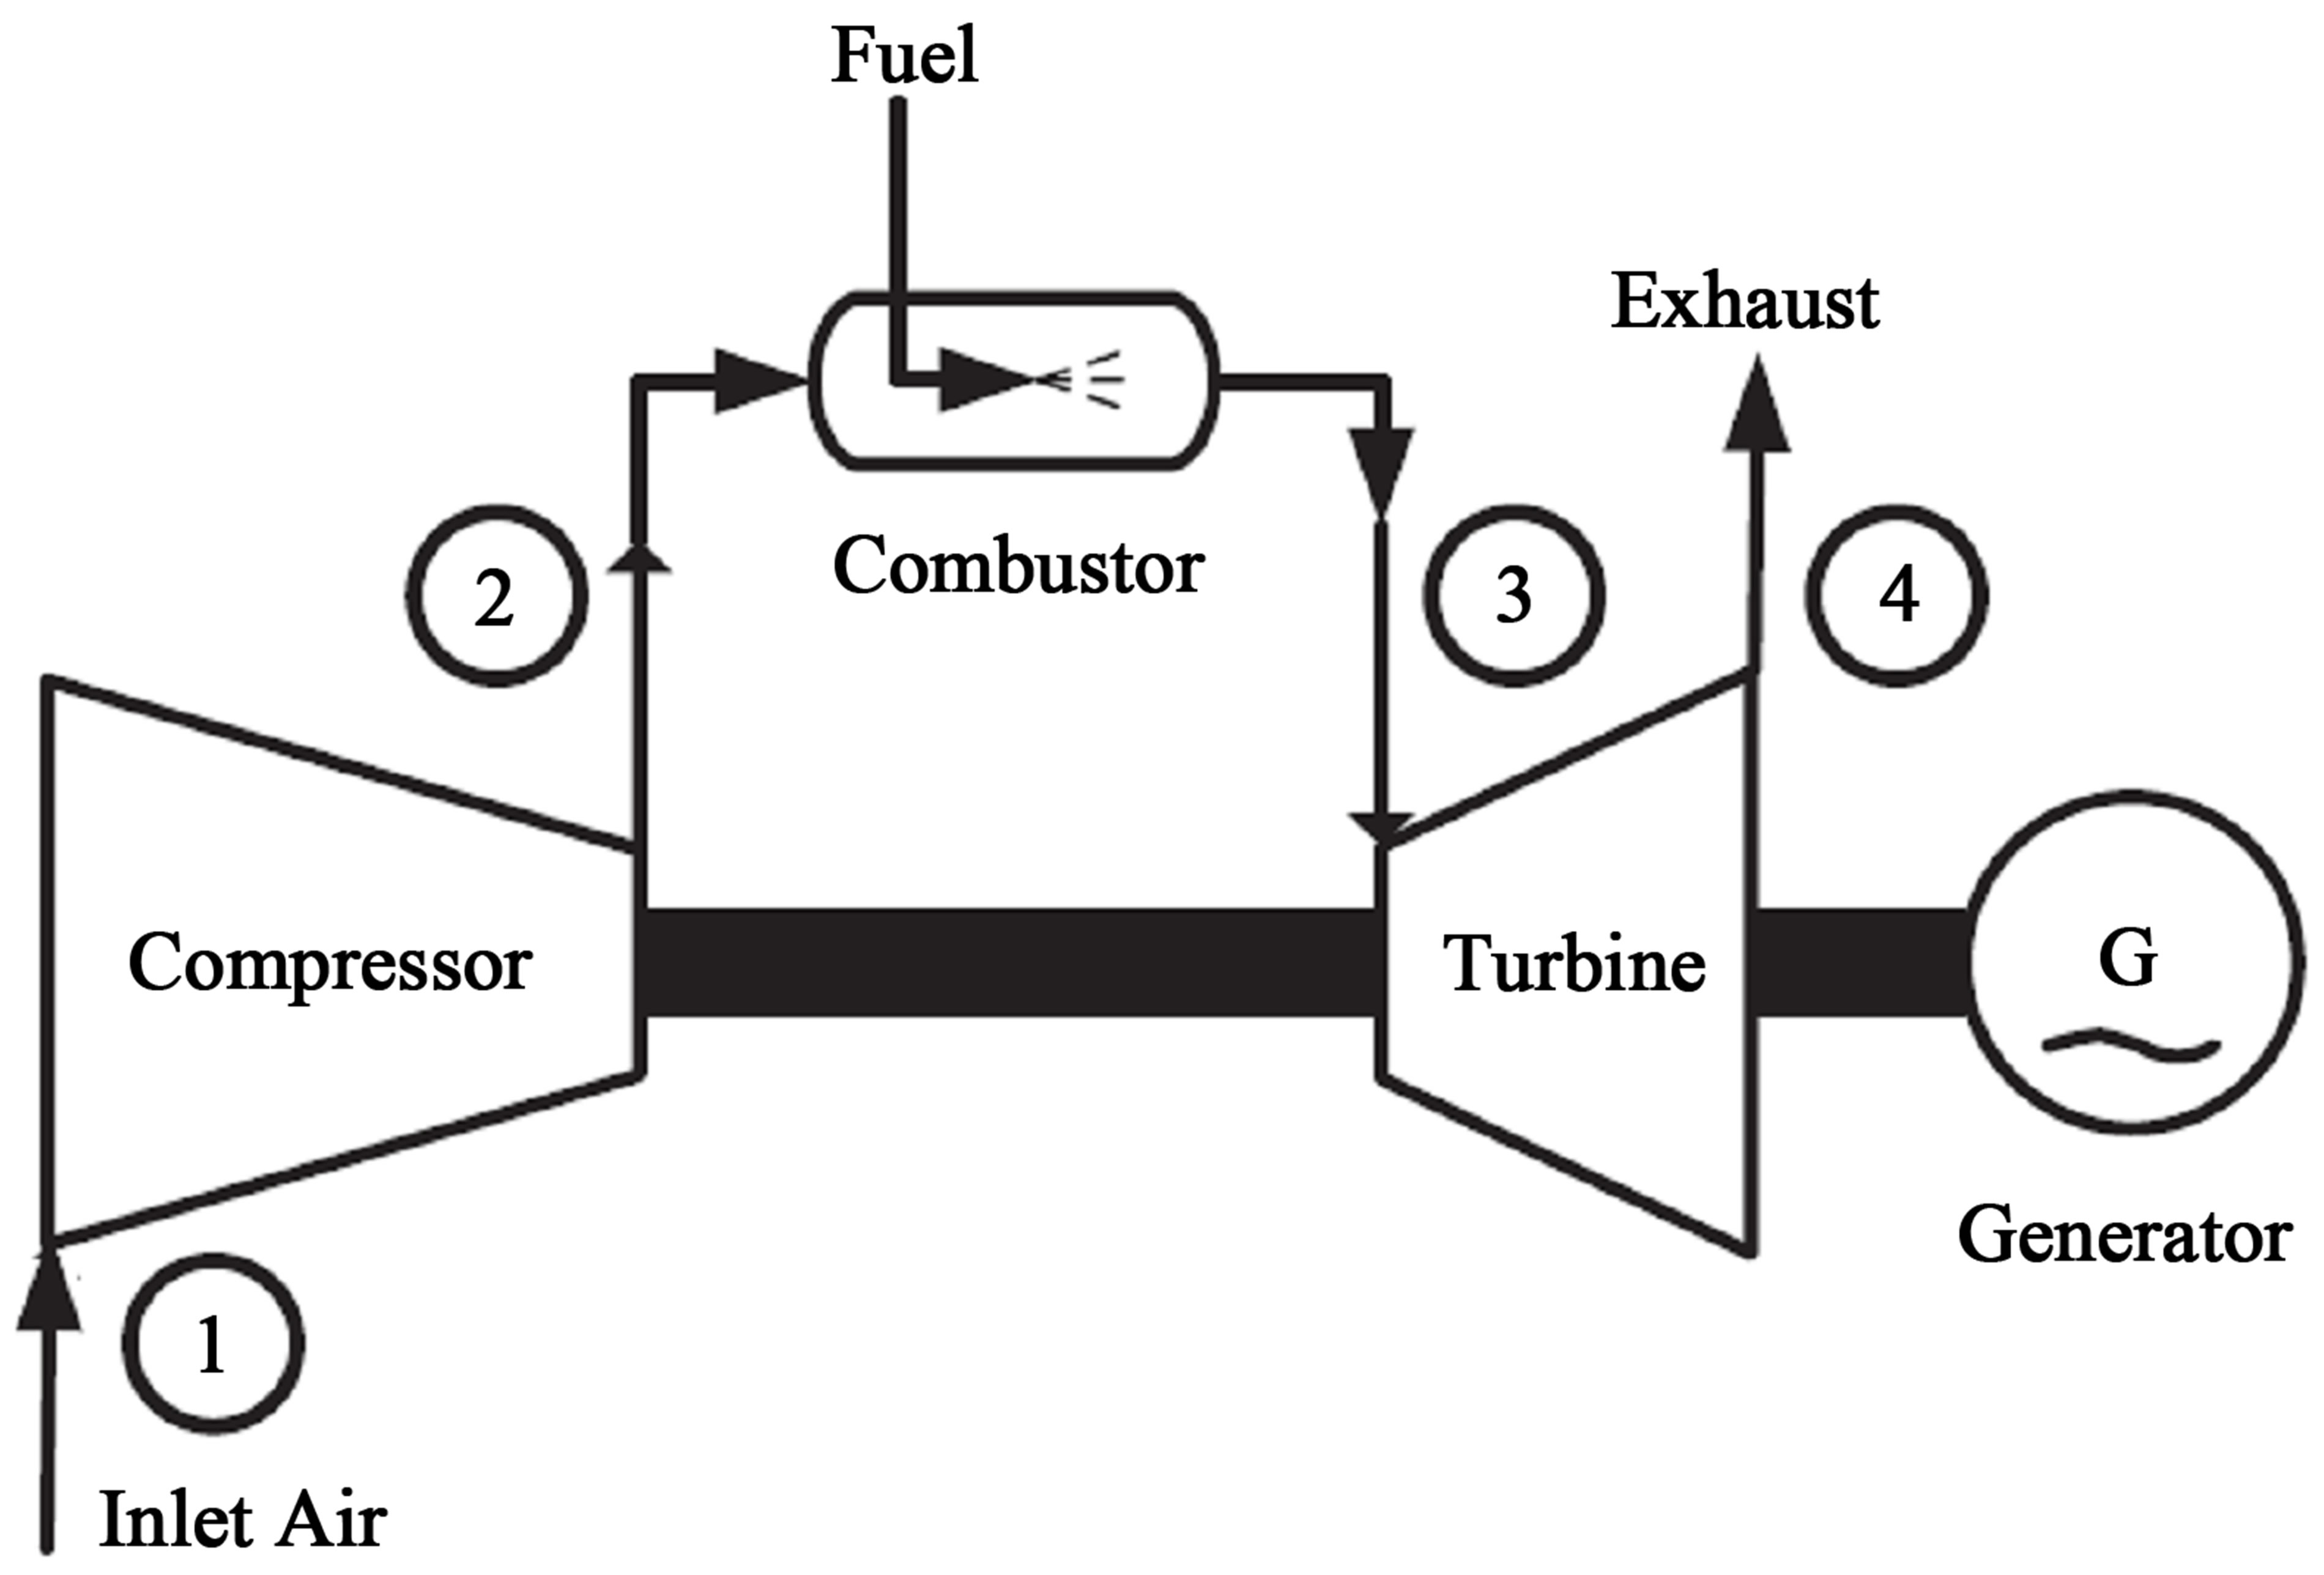 simple cycle gas turbine diagram